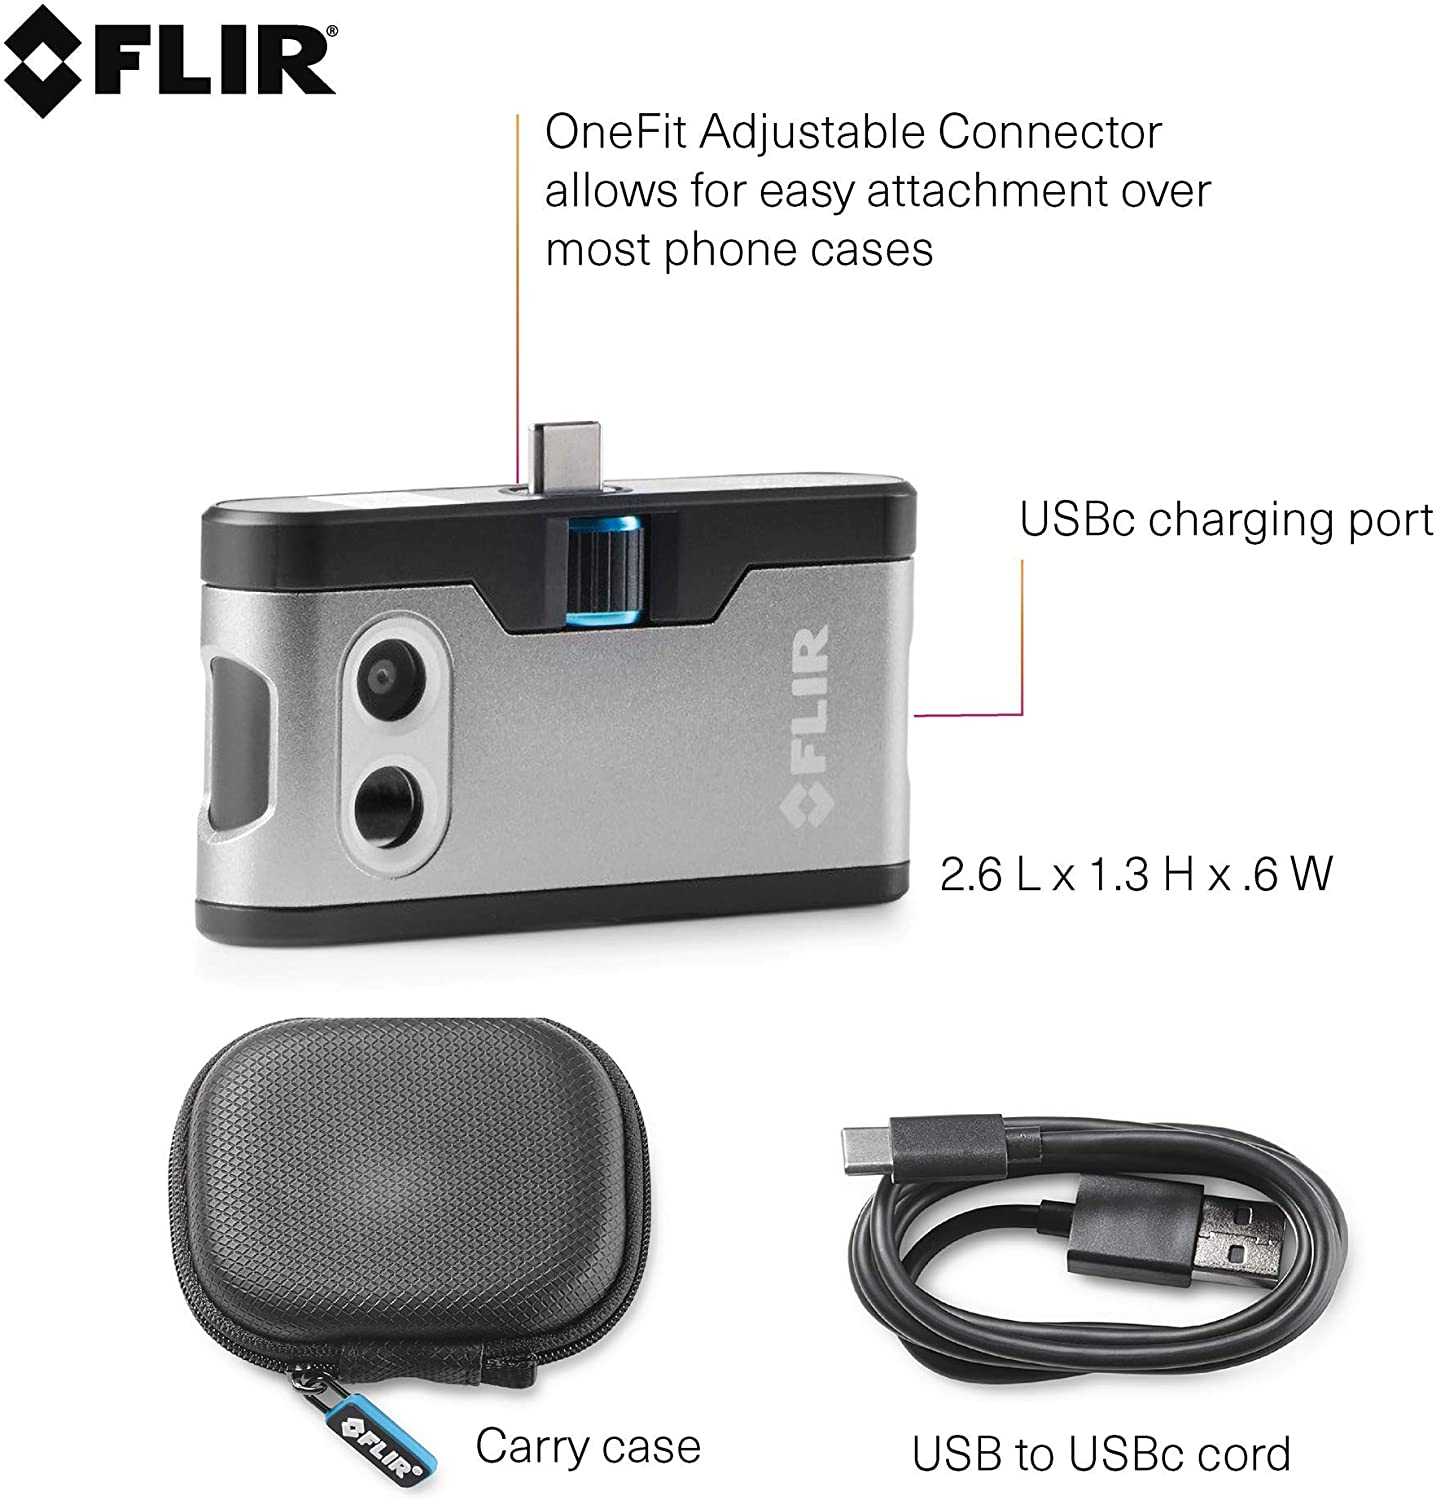 FLIR One Gen 3 Thermal Camera